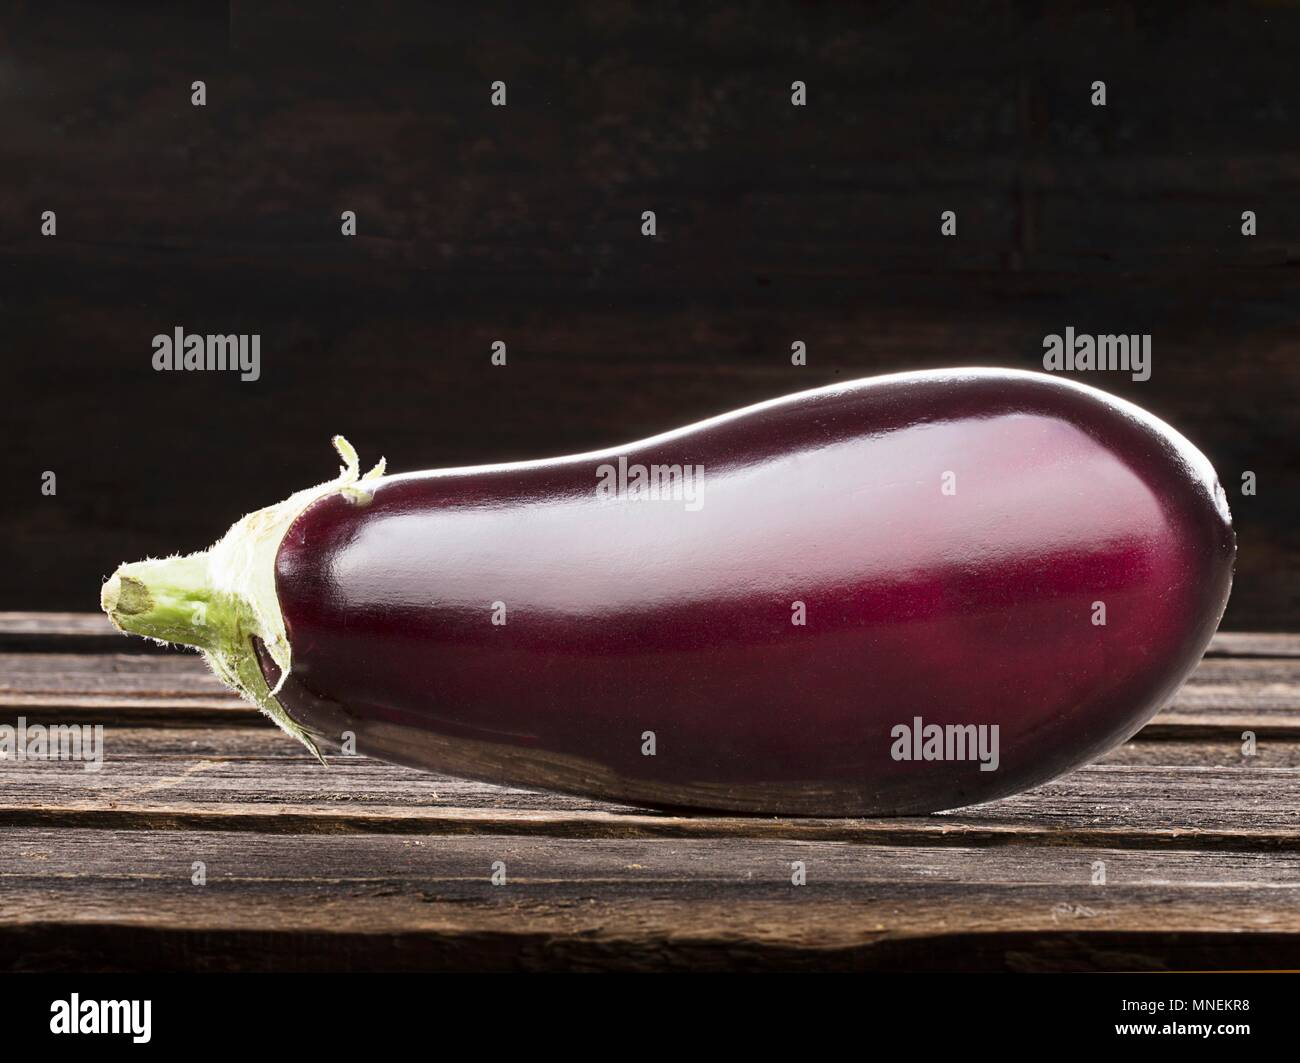 An eggplant on a wooden background - Stock Image